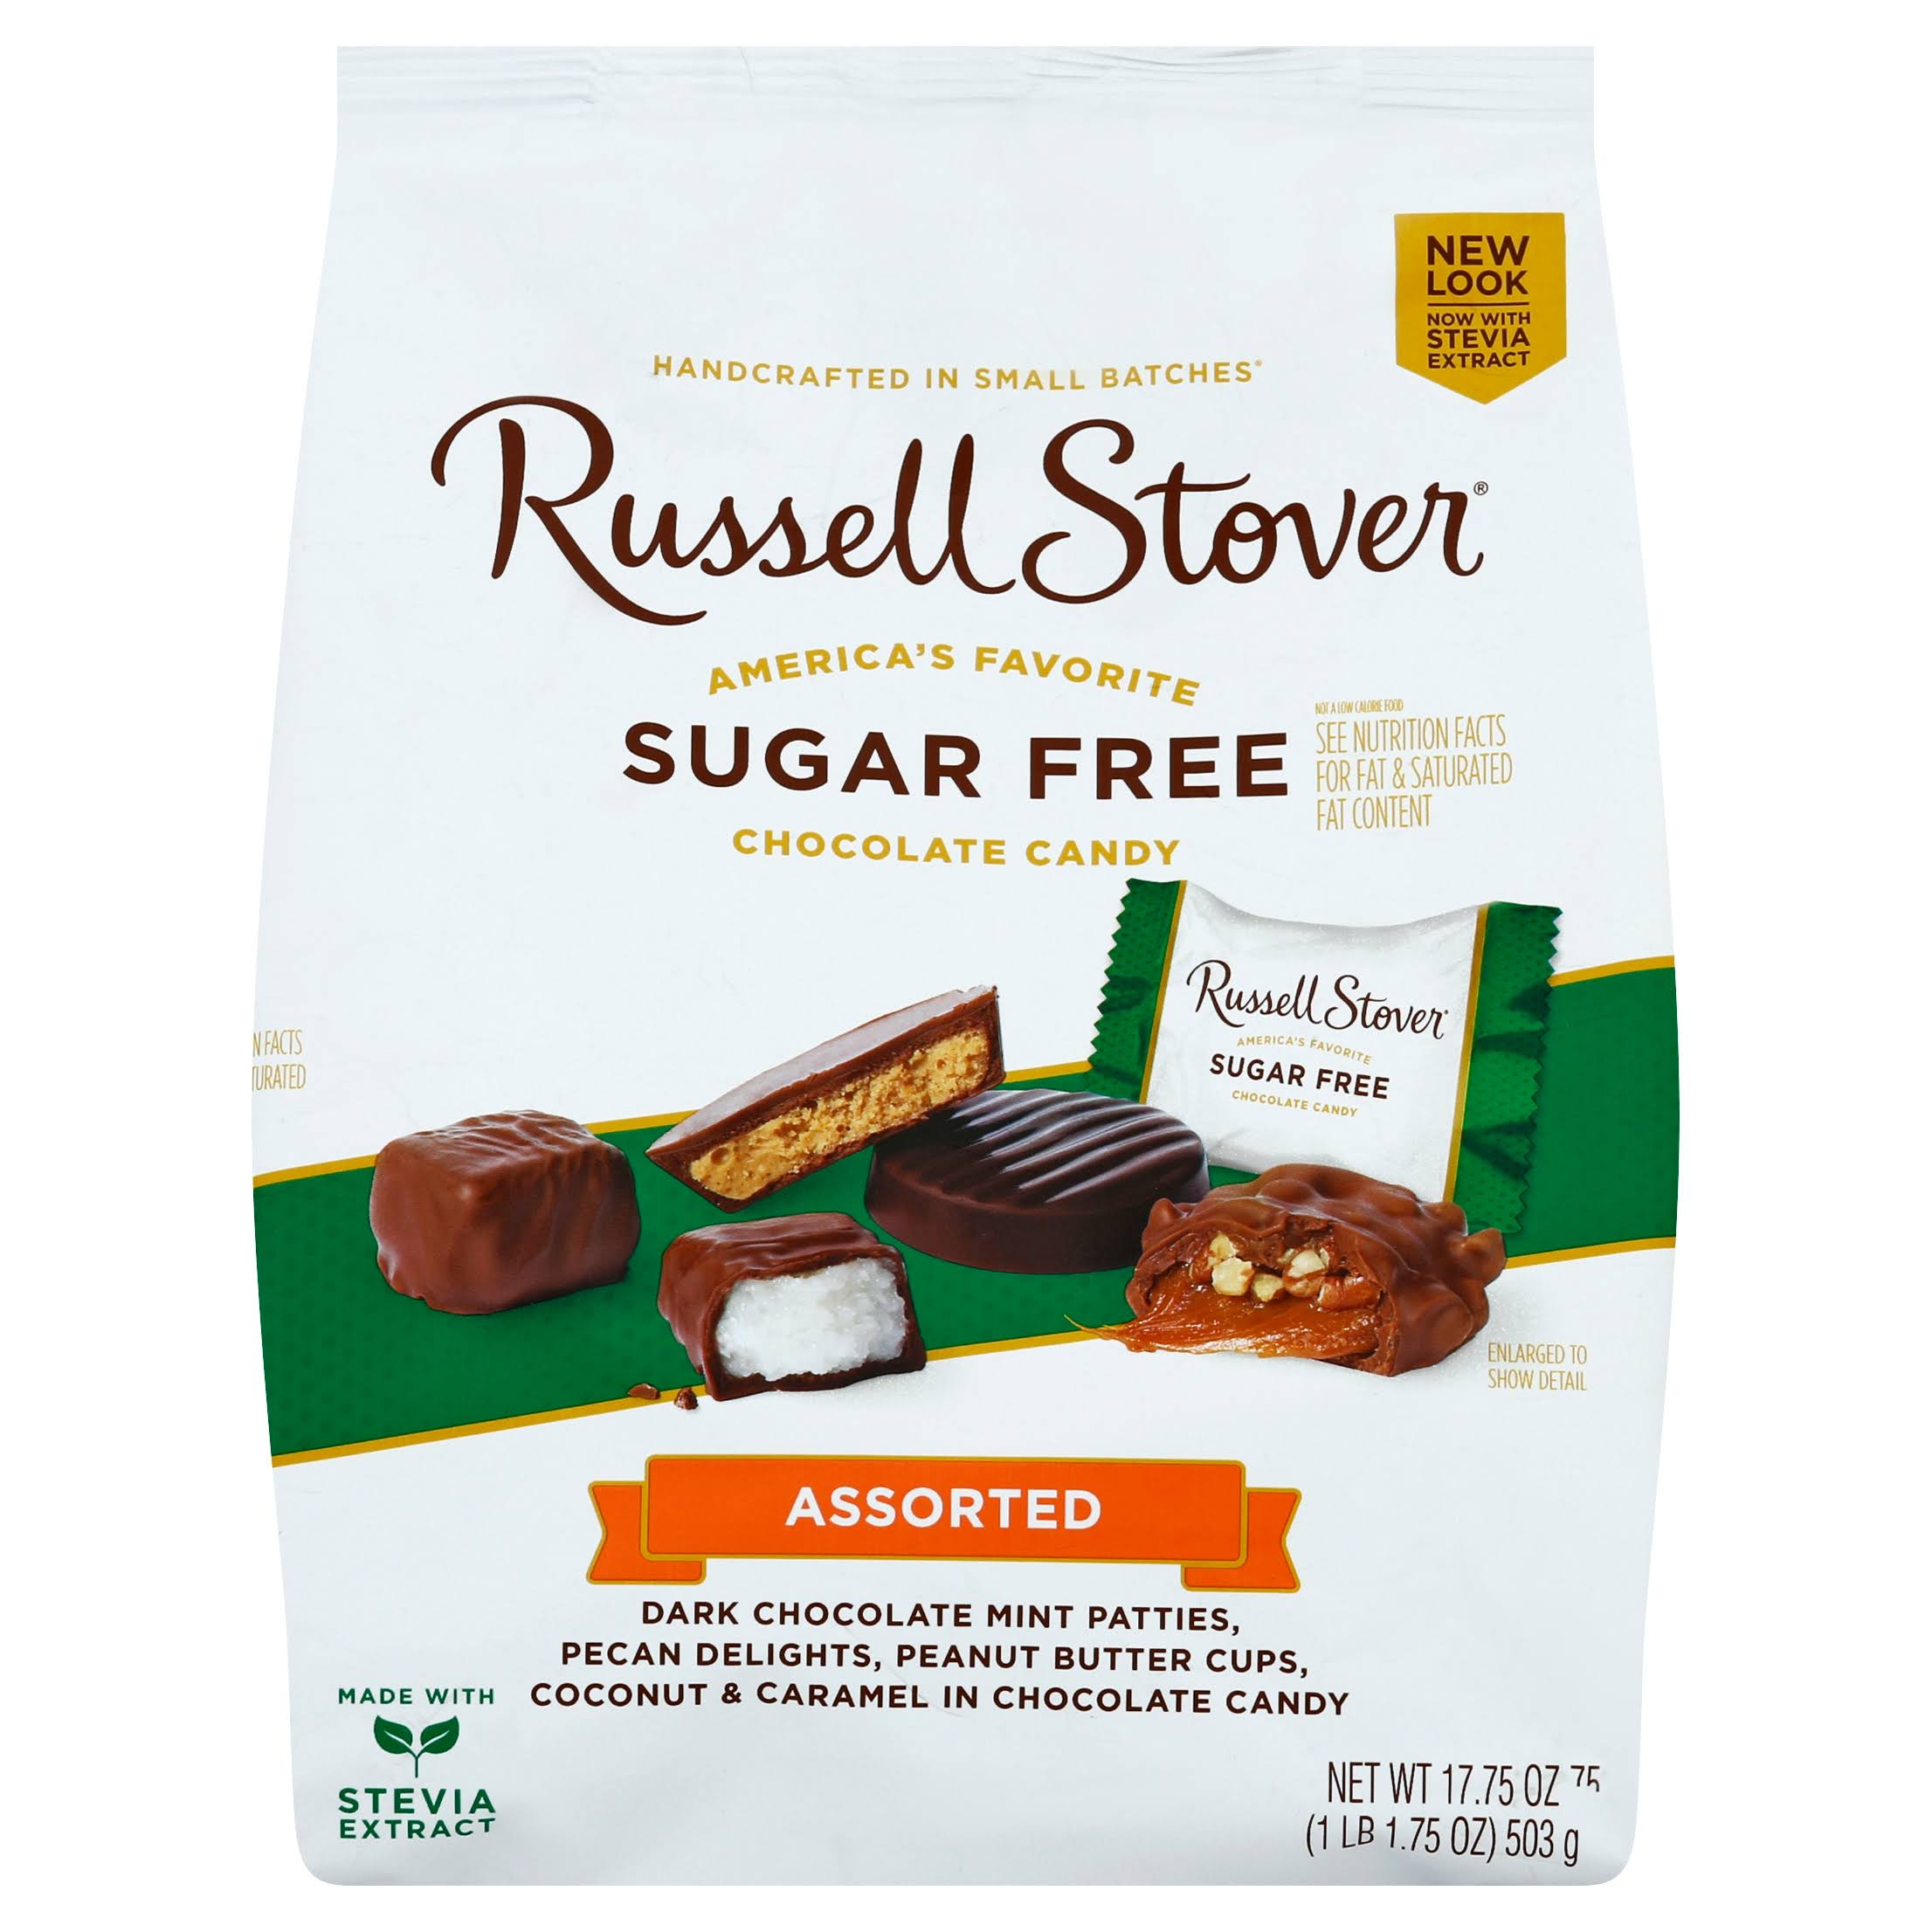 Russell Stover Sugar Free Assorted Chocolates Gusset Bag - 17.85oz